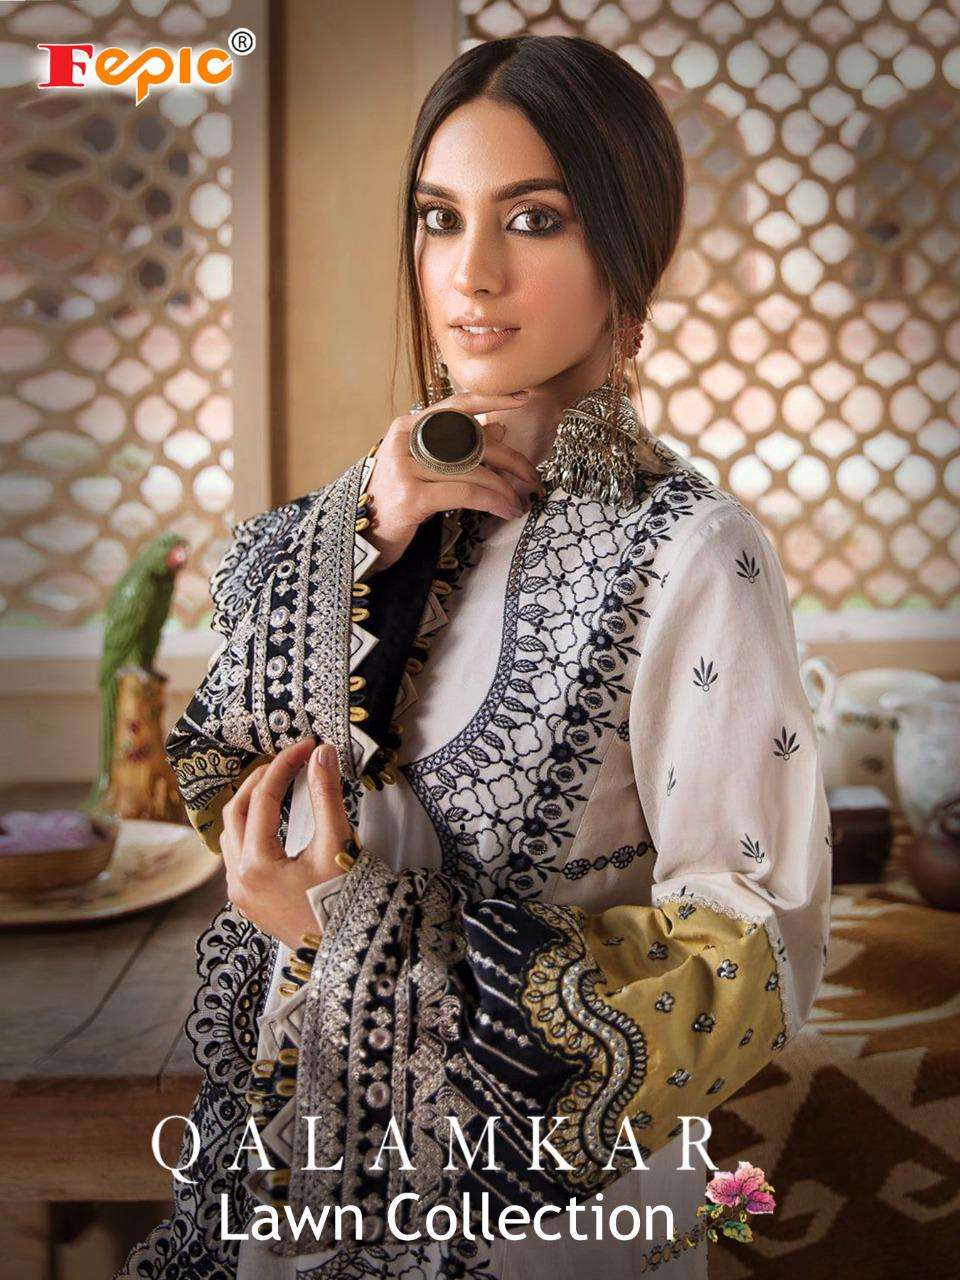 Fepic Rosemeen Qalamkaar lawn Collection Cambric Cotton With Schiffli Work Pakistani suits collection